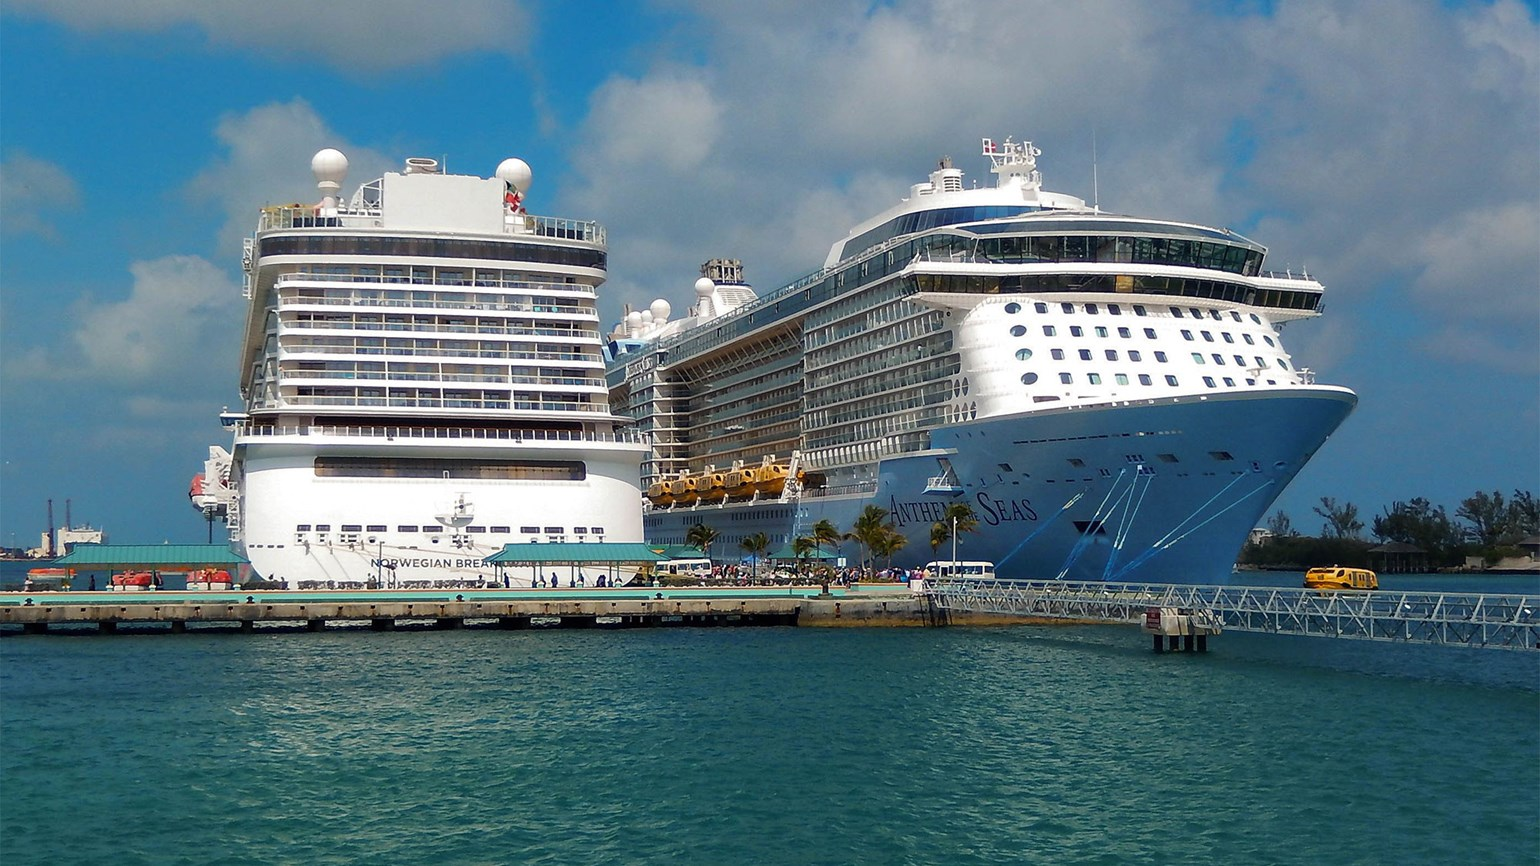 With Some Caribbean Ports Knocked Out Cruise Lines Make Wholesale - Cruise ship caribbean